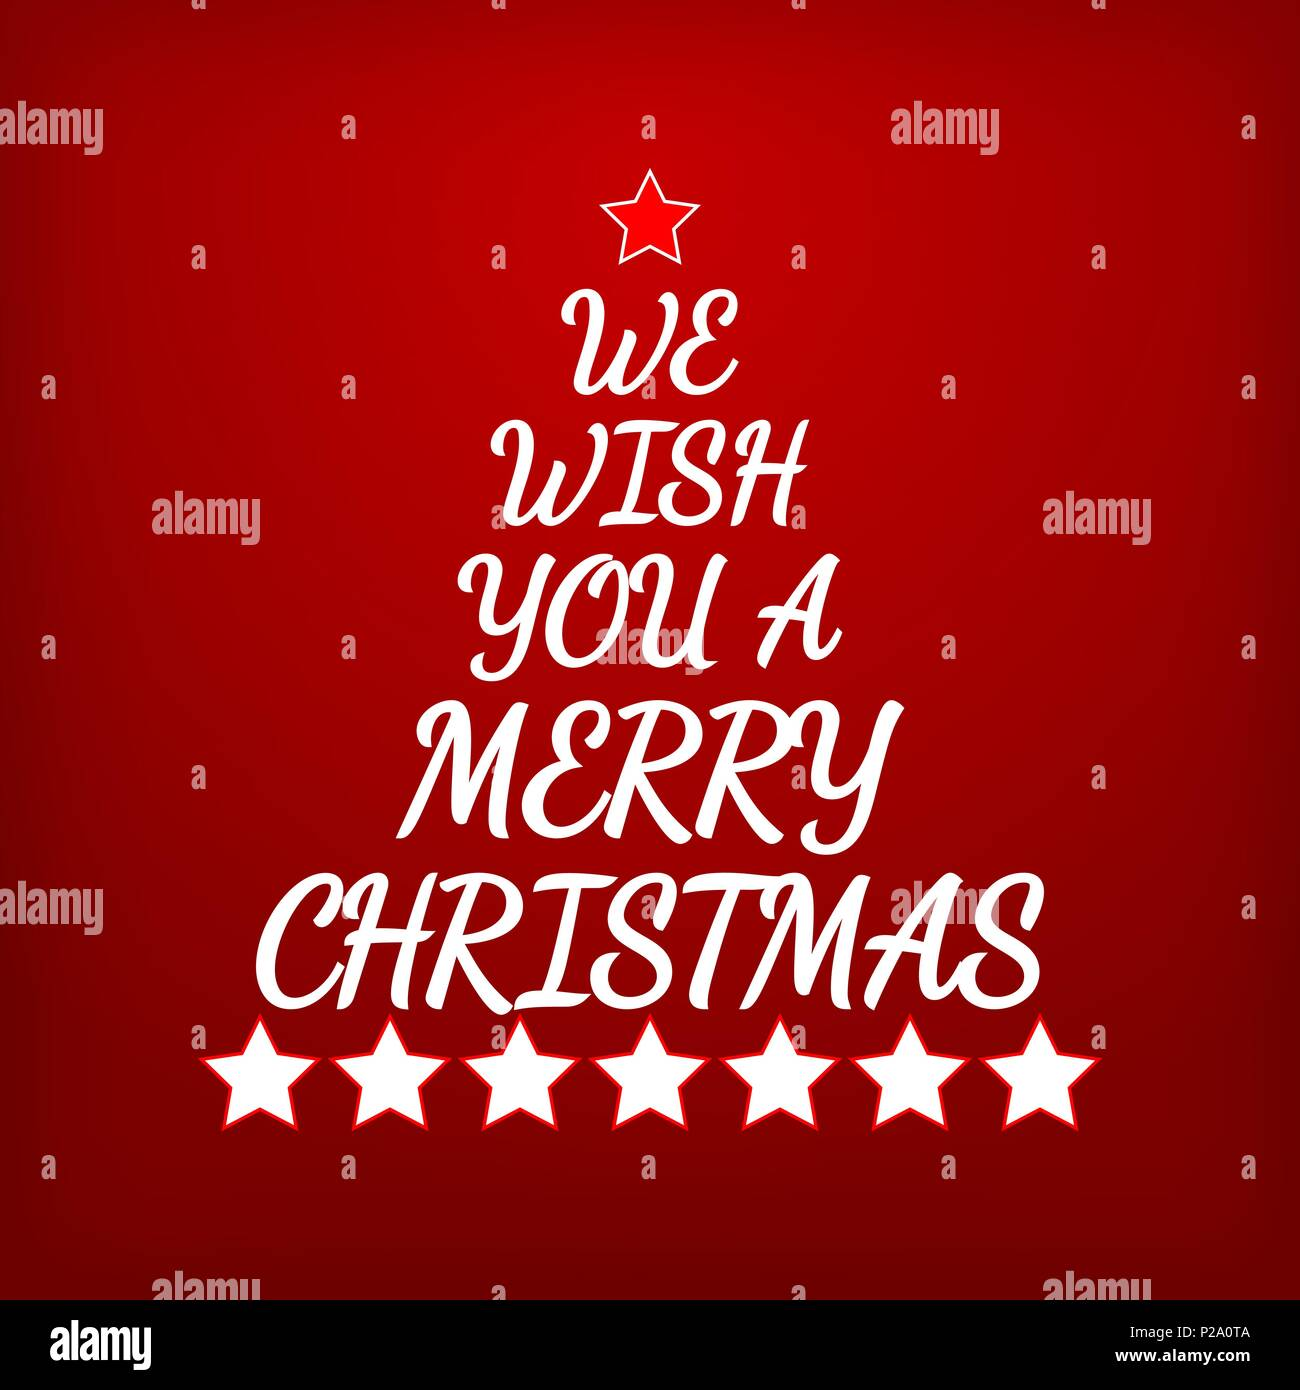 We Wish You A Merry Christmas Letters And Stars Forming Christmas